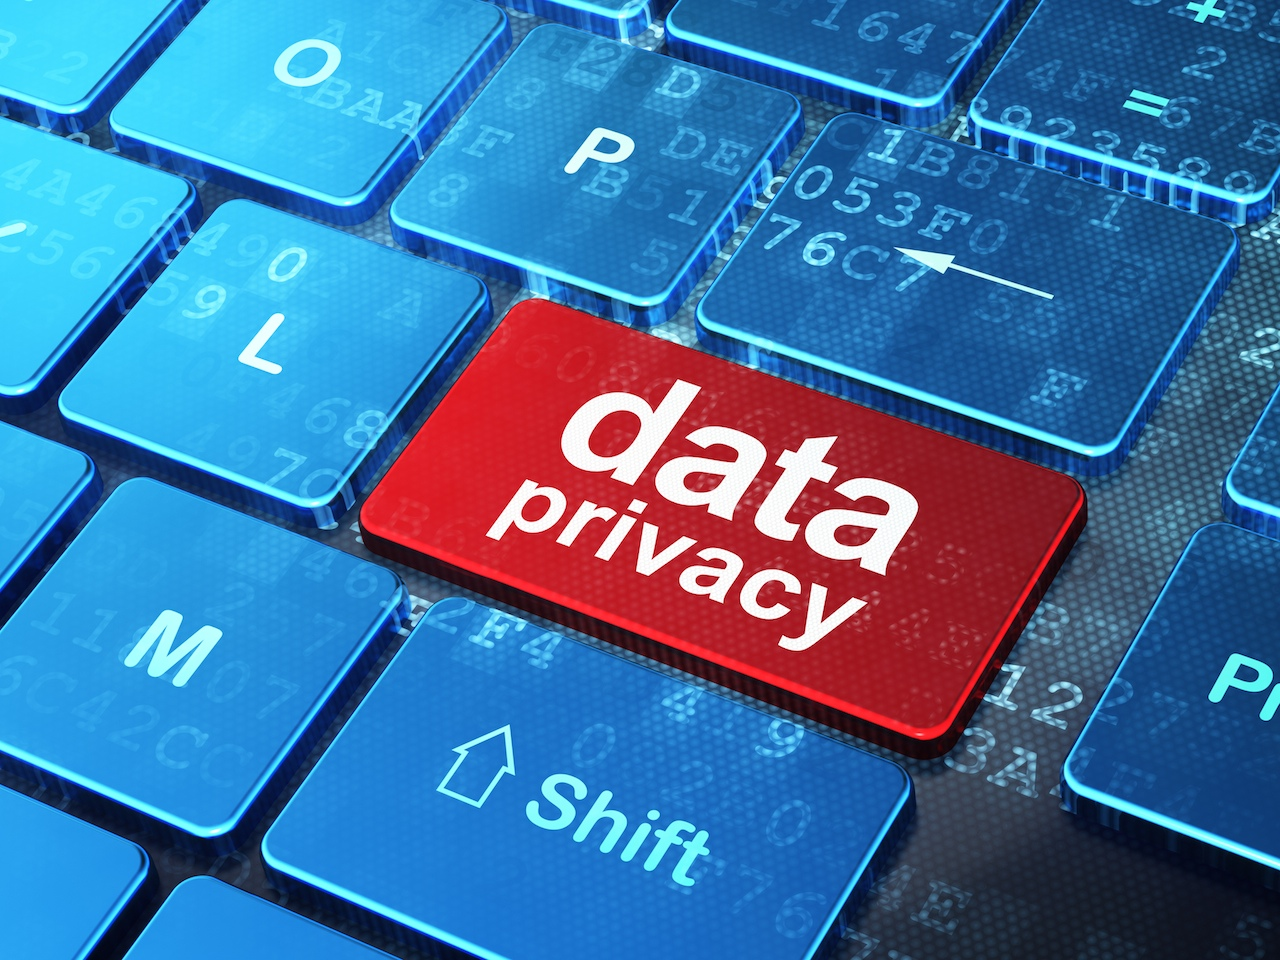 law over privacy concerns